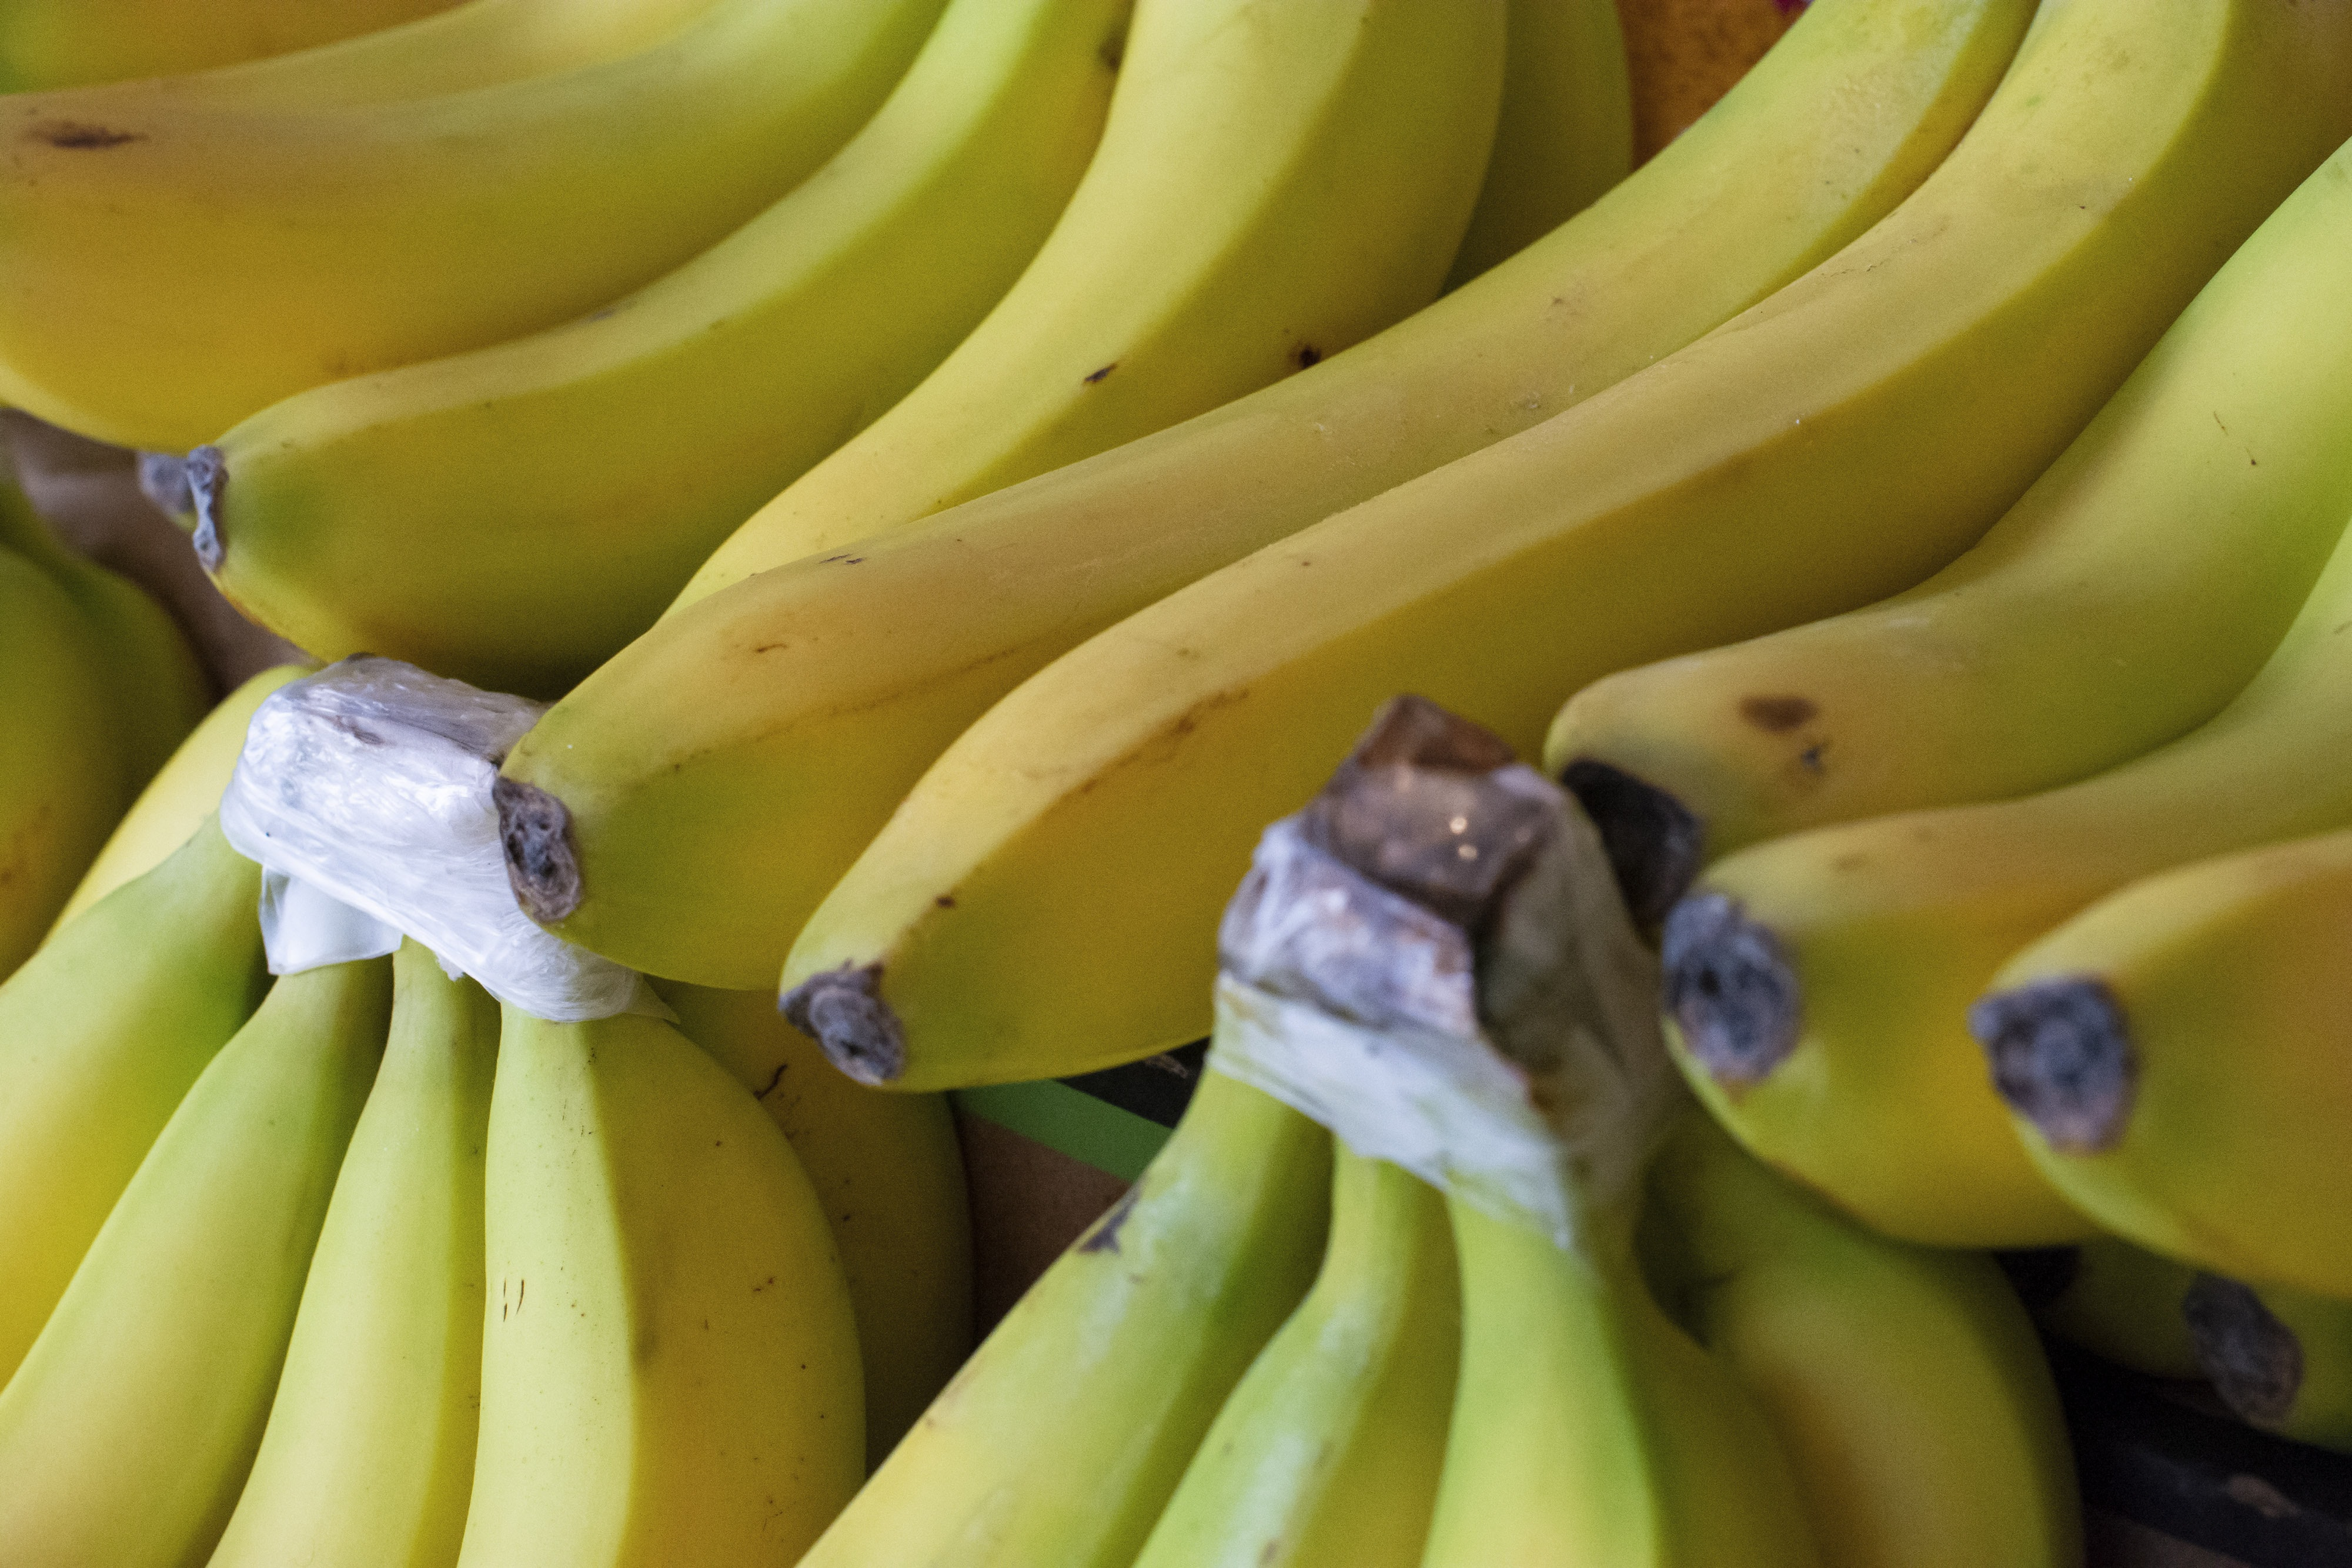 Banana Bunch Pictures Download Free Images On Unsplash